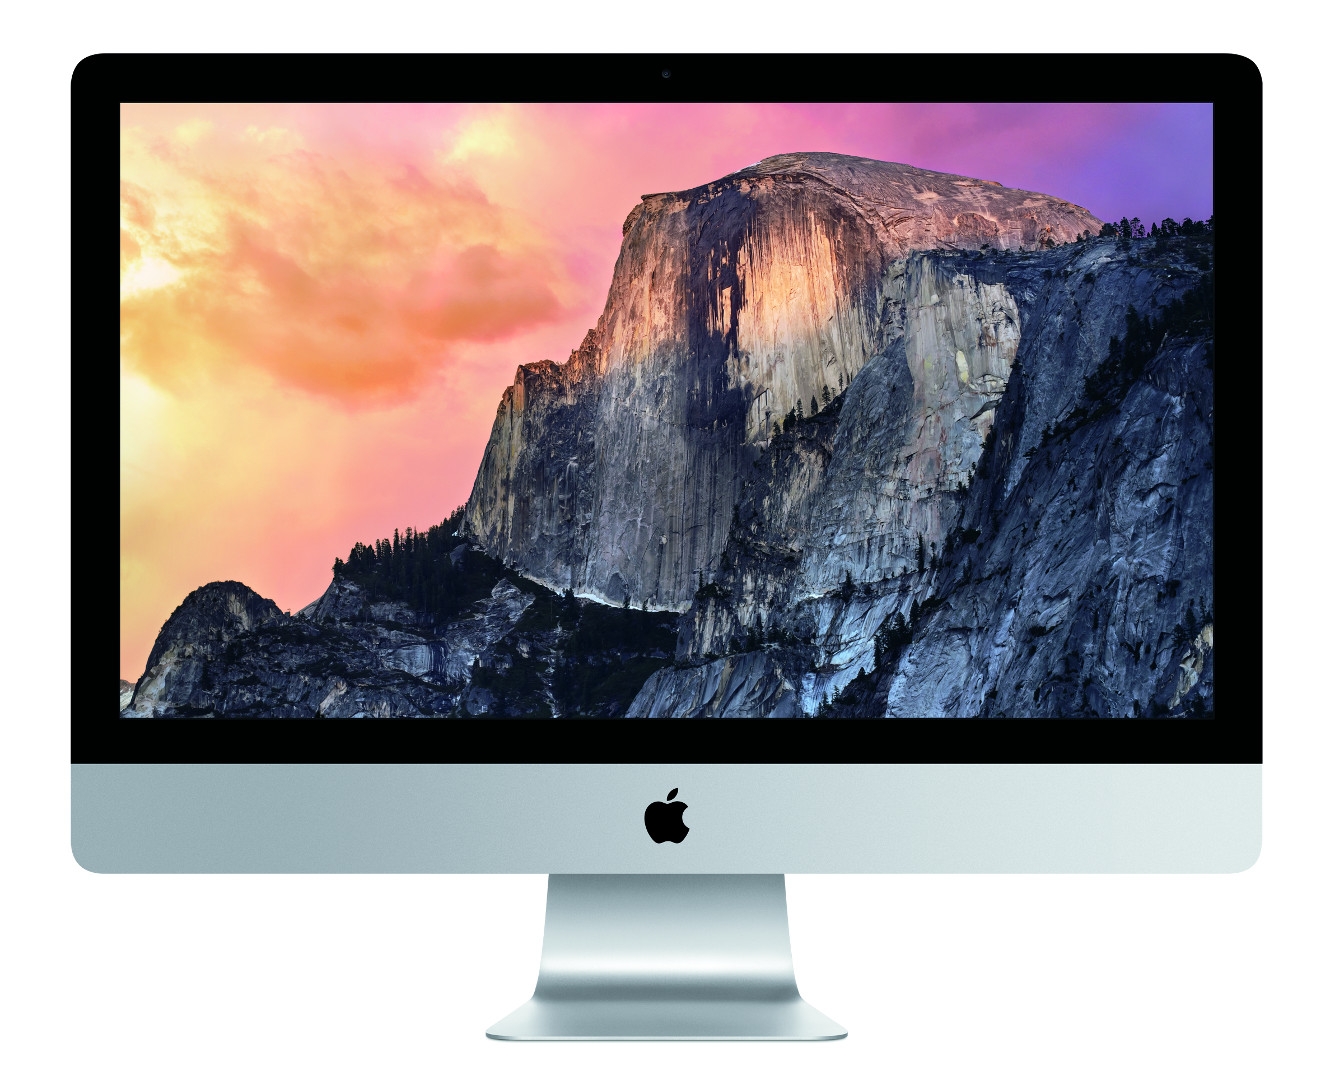 Apple iMac 27in Core i5 2.66GHz 4GB RAM 1TB HDD MB953BA A1312